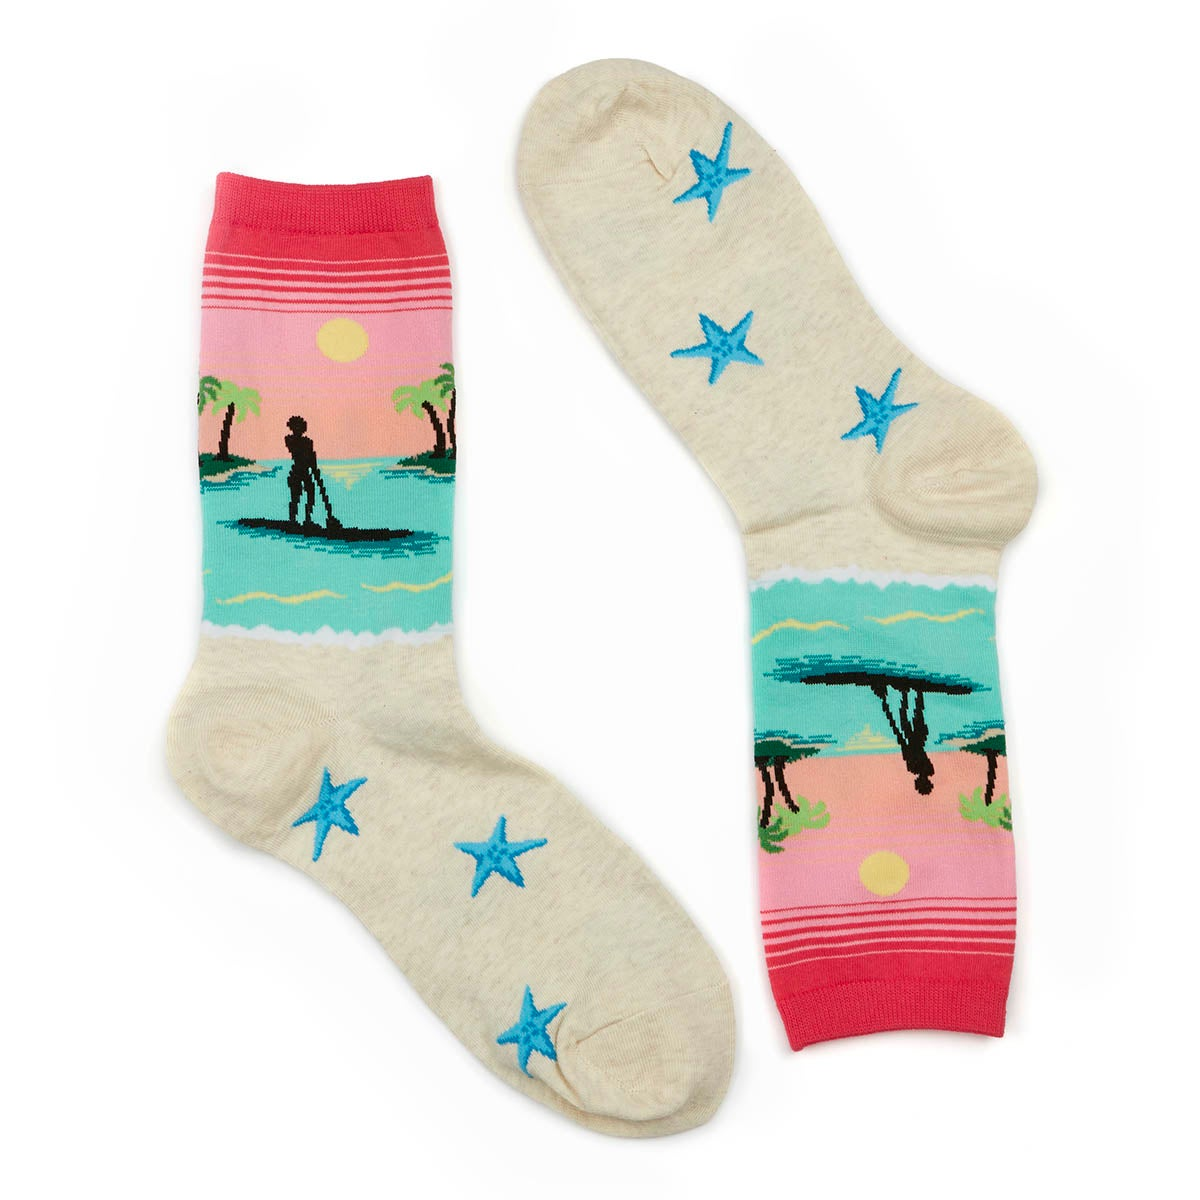 Lds Paddle Board pink/multi printed sock